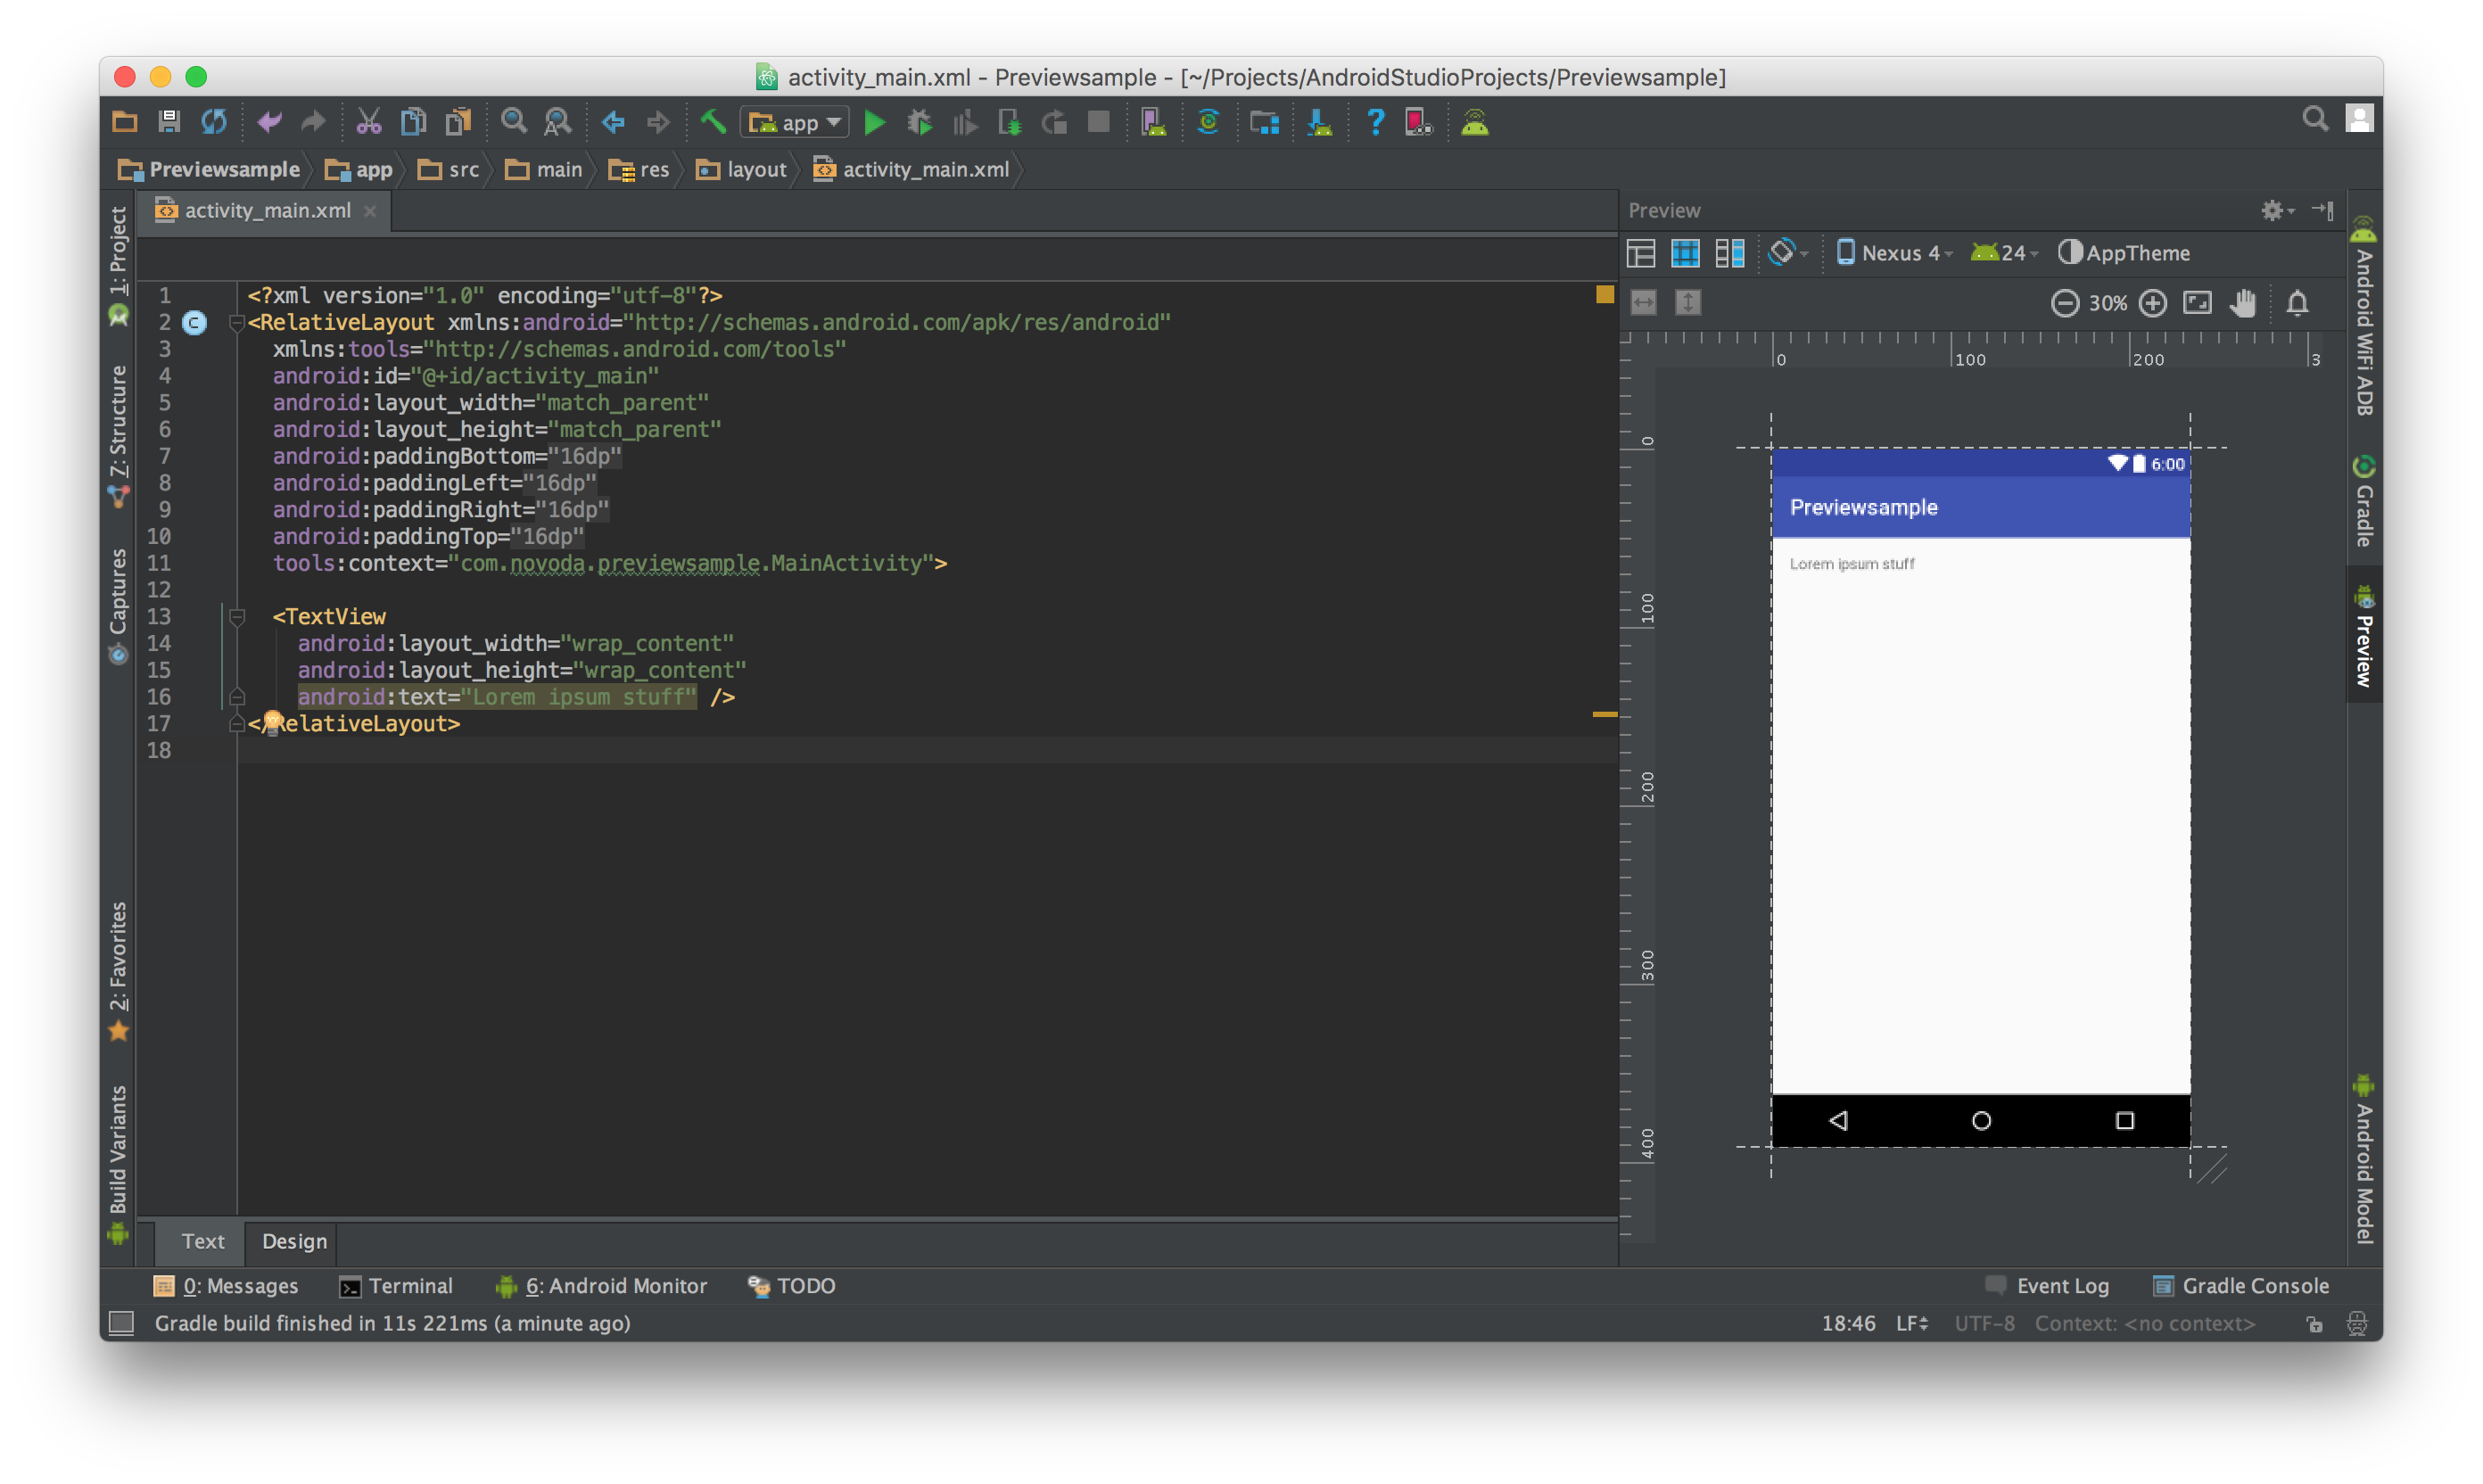 Preview of the Layout Preview screen in Android Studio